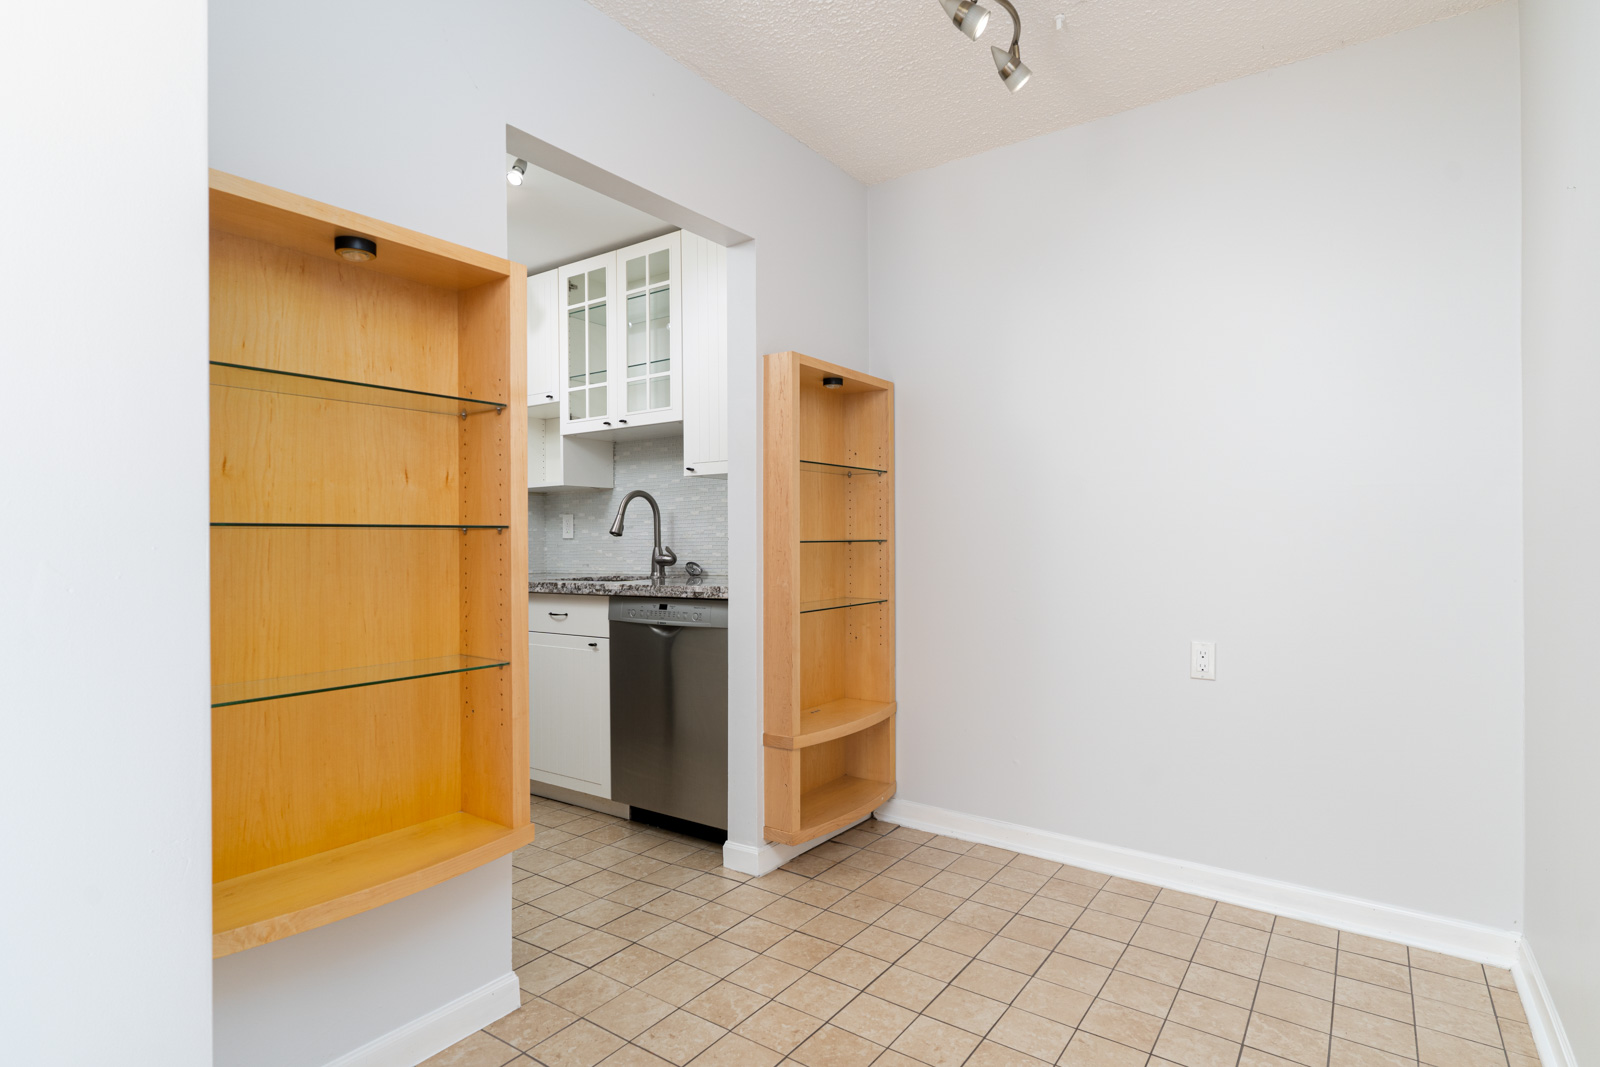 bright condo in east vancouver in mount pleasant neighborhood with white walls and dishwasher